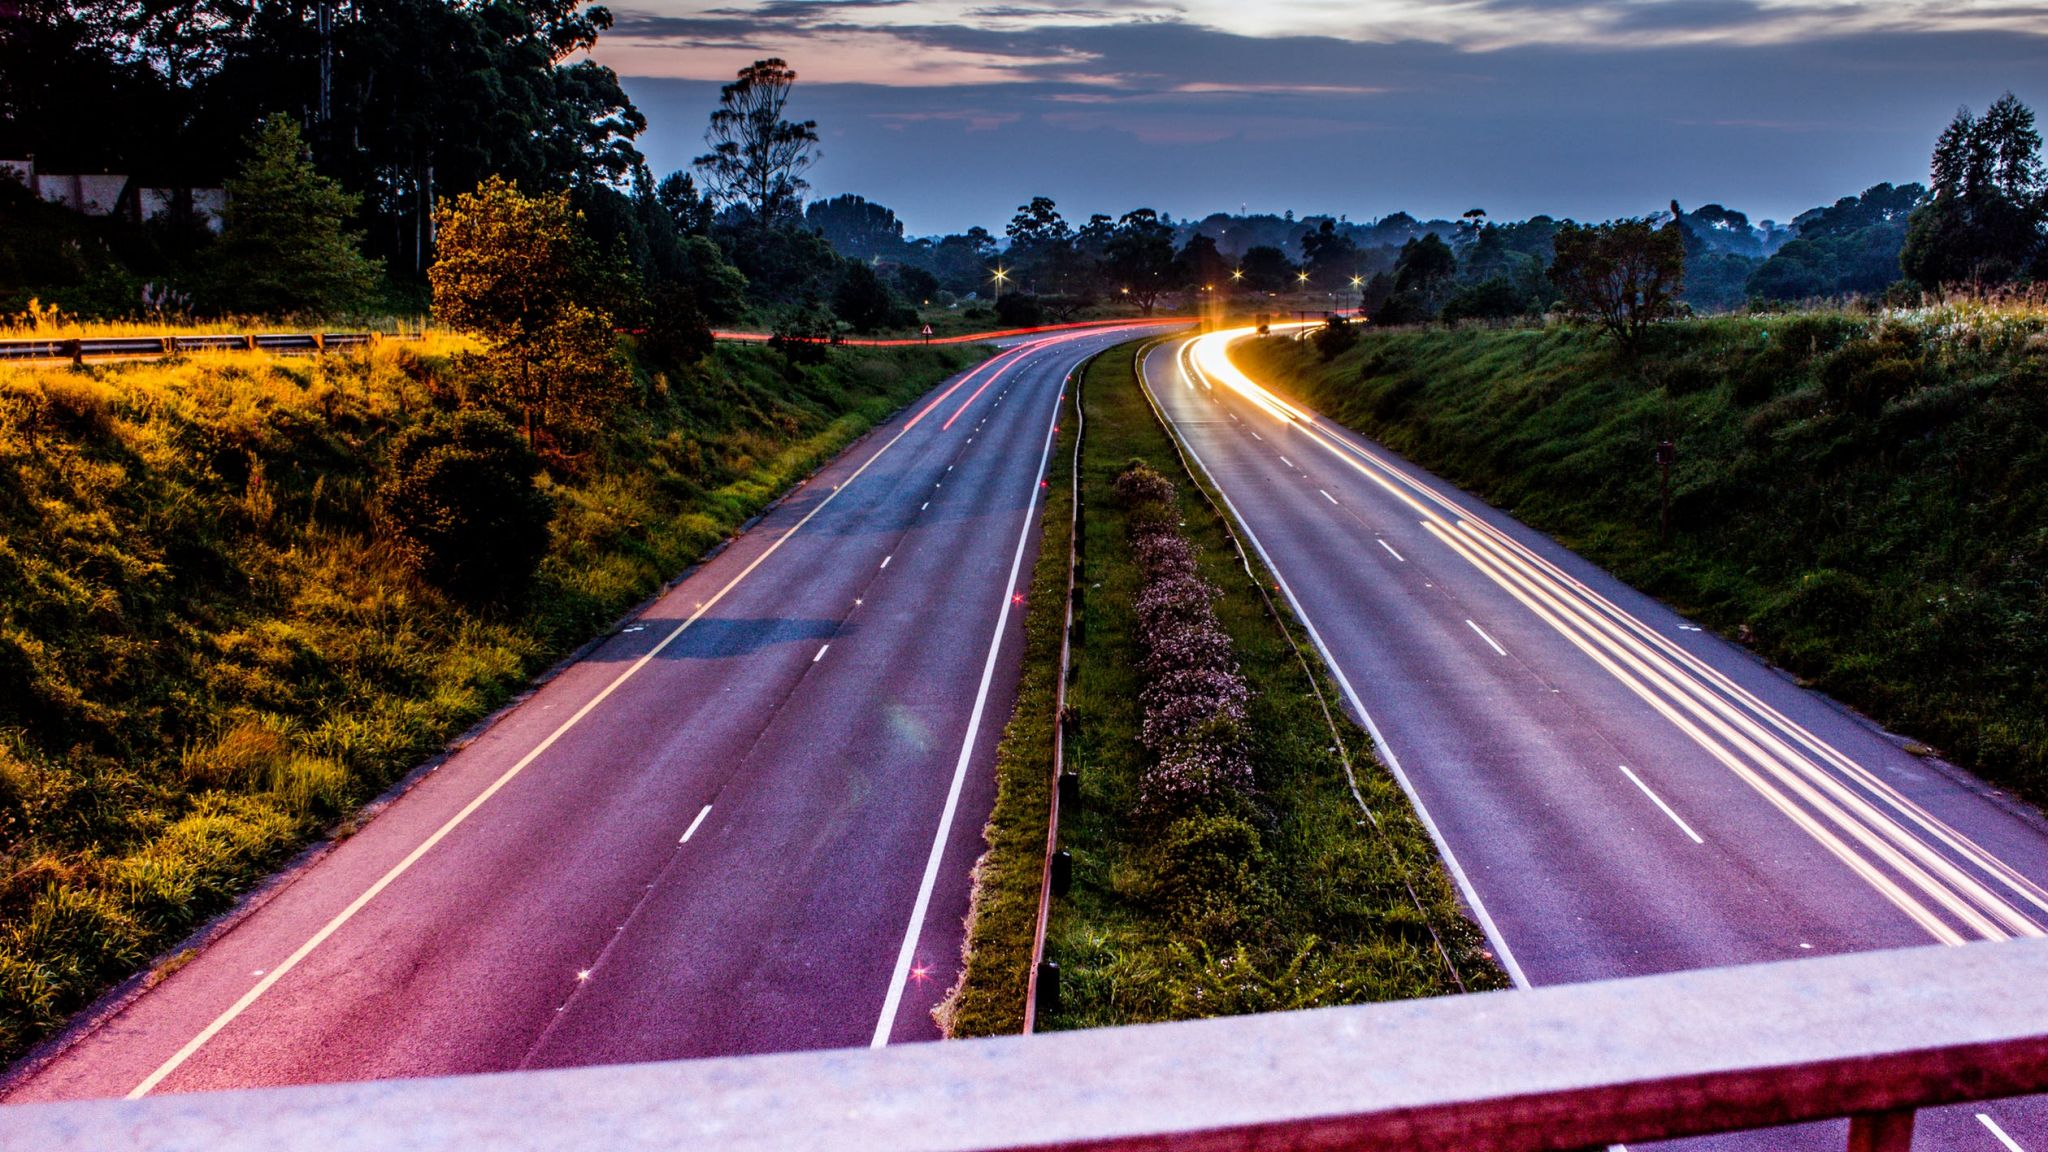 Coolest road trips | The best drives in the world